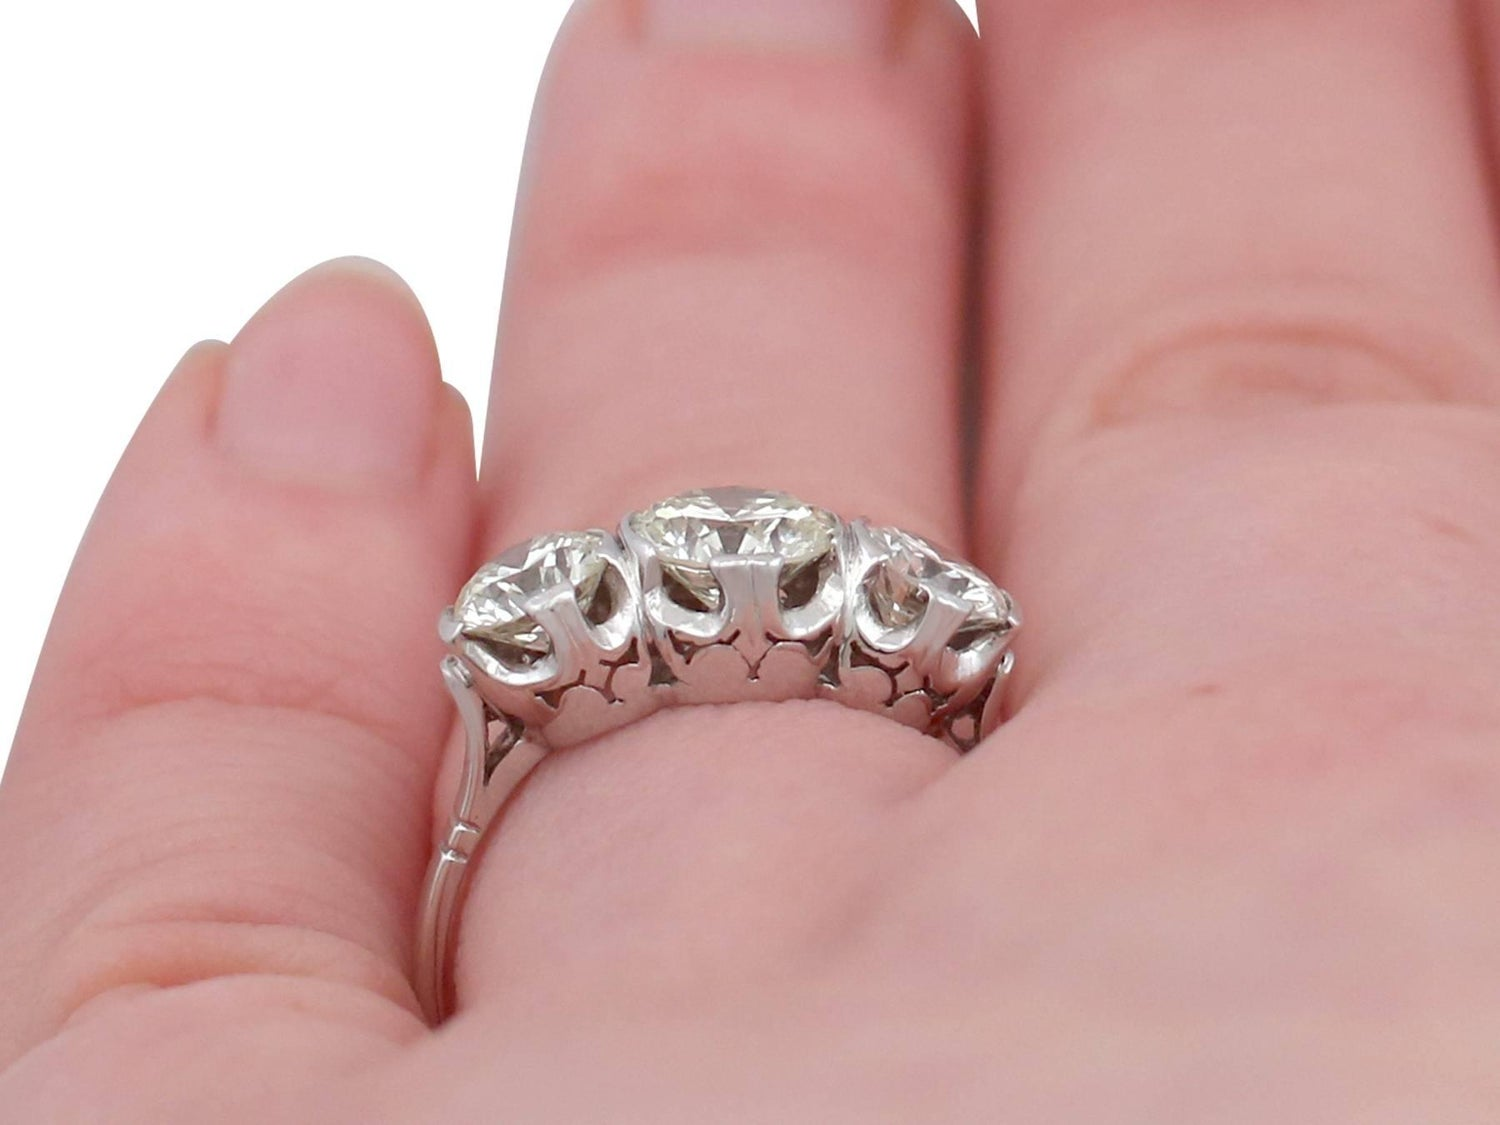 1940s 2.17 Carat Diamond and Platinum Trilogy Ring For Sale at 1stdibs